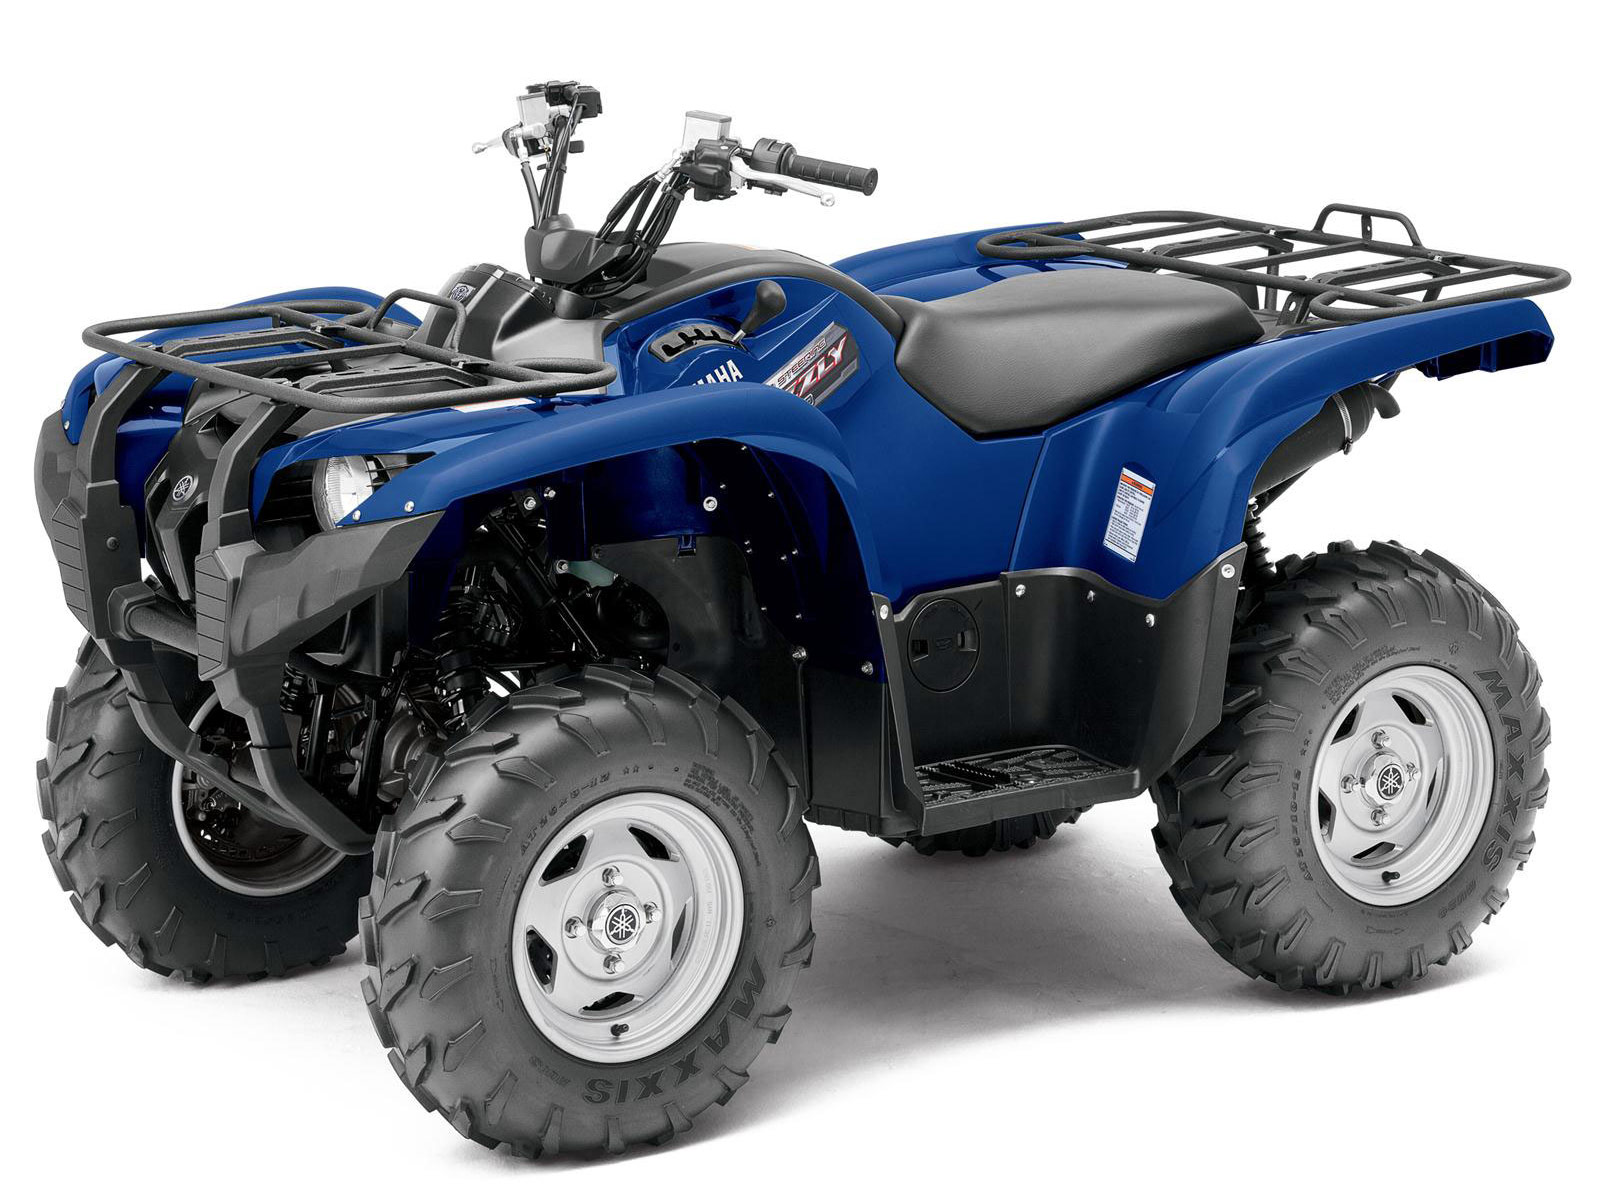 Yamaha Grizzly Horsepower